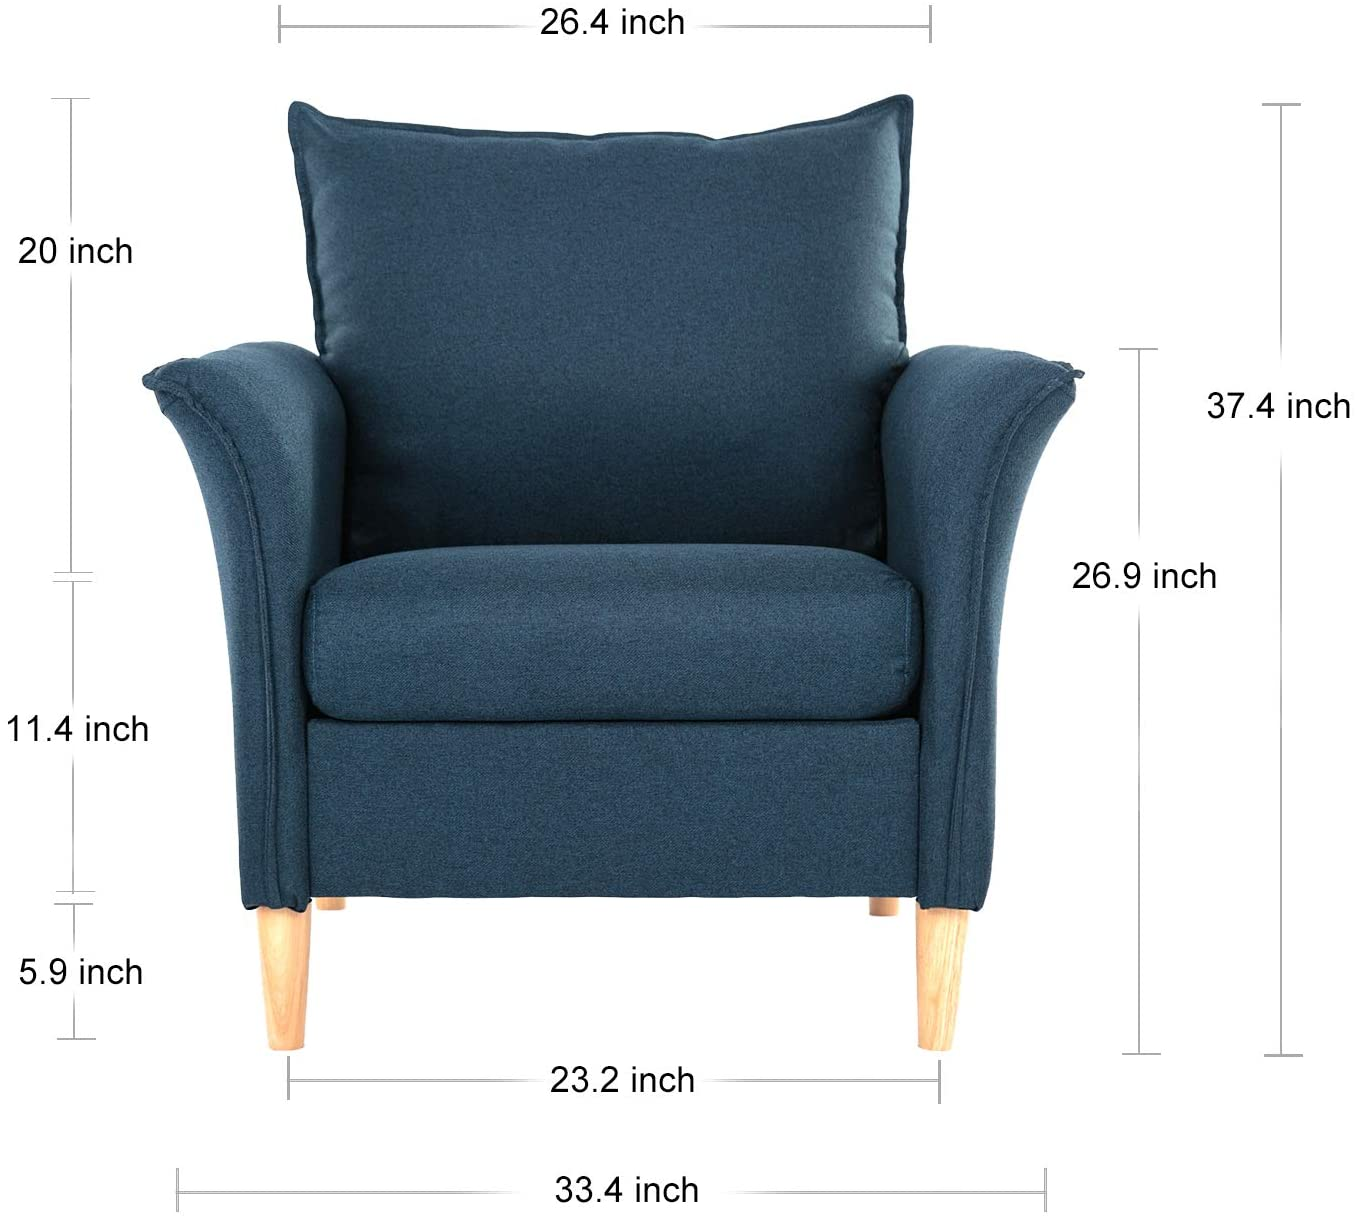 Smudesk Modern Fabric, Single Sofa Comfy Upholstered Arm Chair Living Room Furniture, Accent, Dark Blue